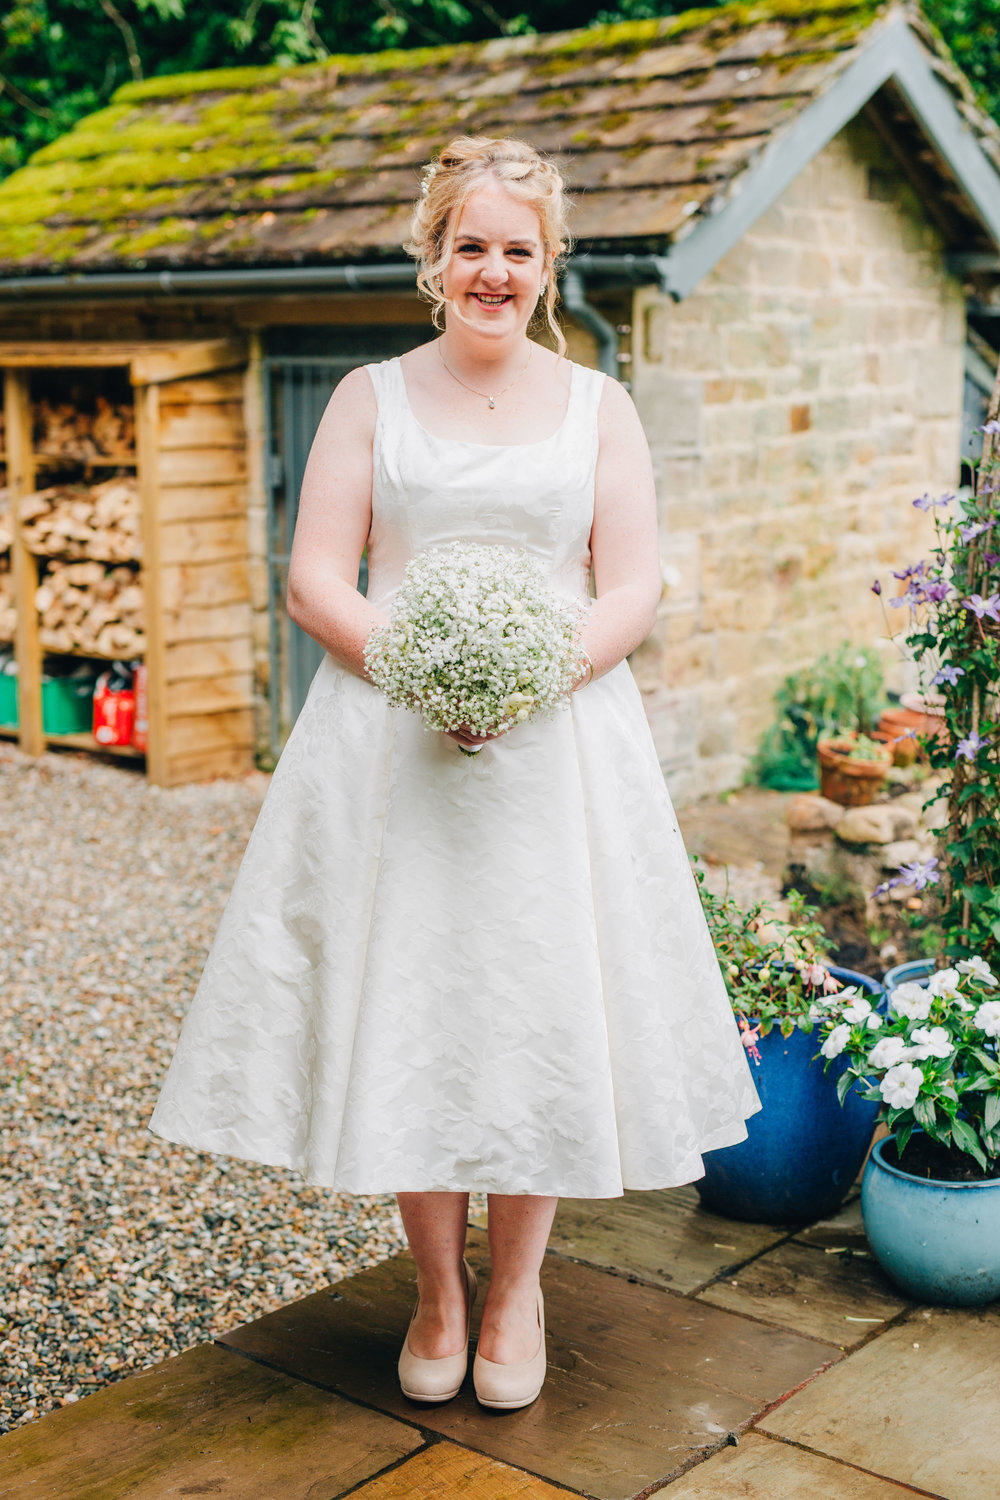 bespoke wedding dress - relaxed wedding photographer